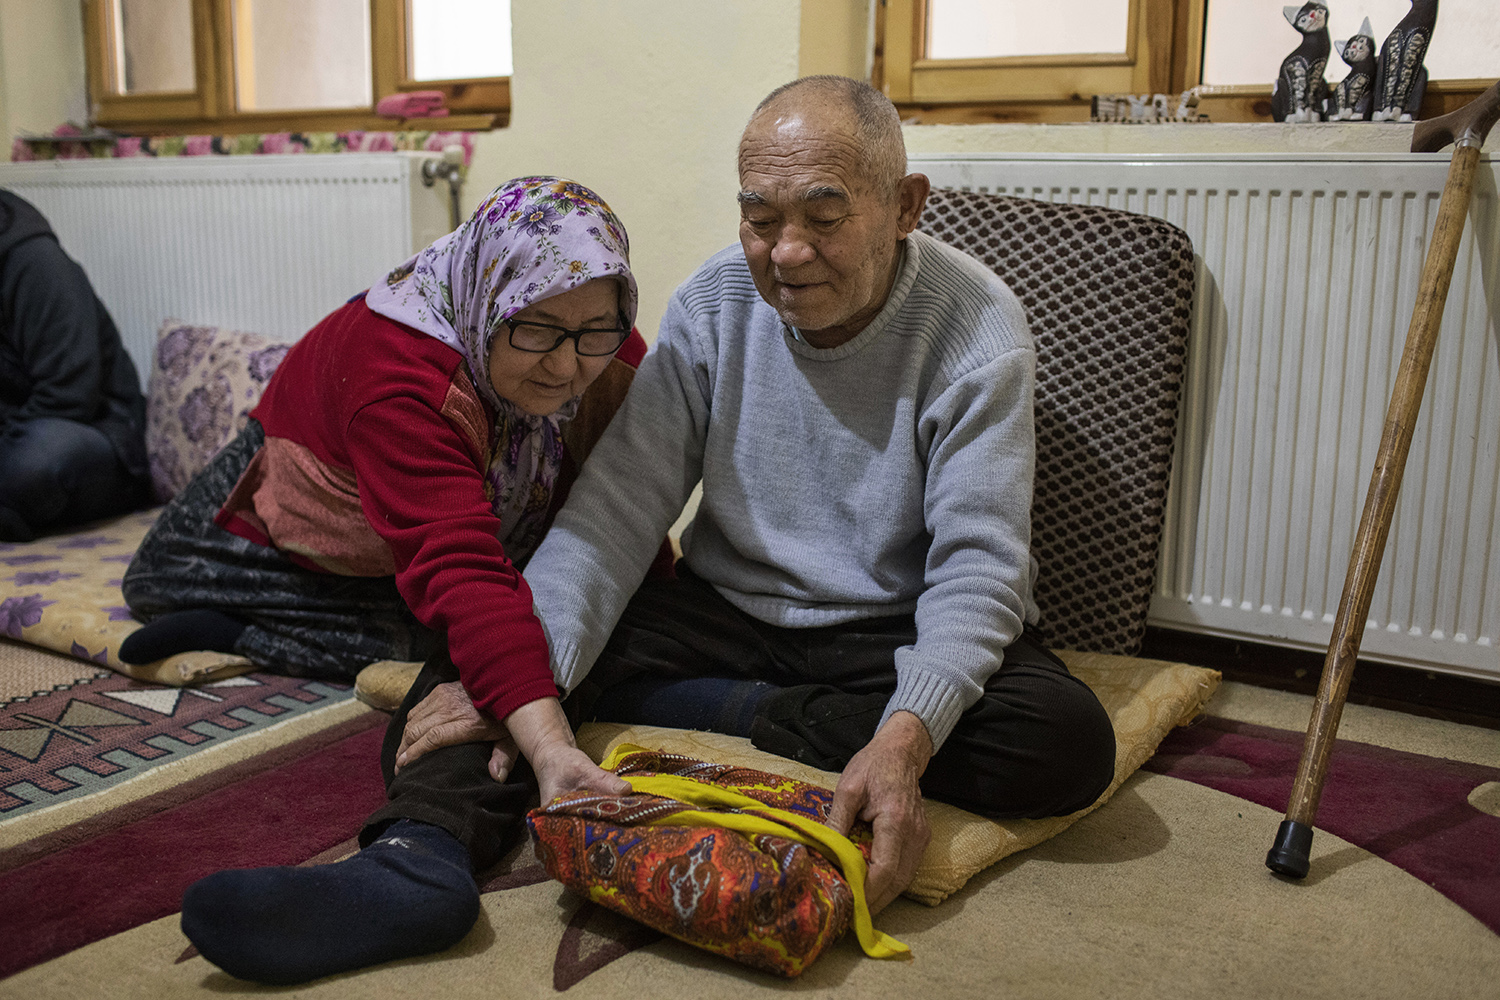 Gulchaman Nowruzi, 65, with her husband, Khodadad Yaqubi, 76, holds a Quran, the only possession they still have from their home in Mazar-e-Sharif, Afghanistan, at their new home in Van, Turkey on March 1, 2019. The Afghan refugees first fled to Iran in 1982 and then to Turkey, where they now live temporarily with their two daughters, in 2018.